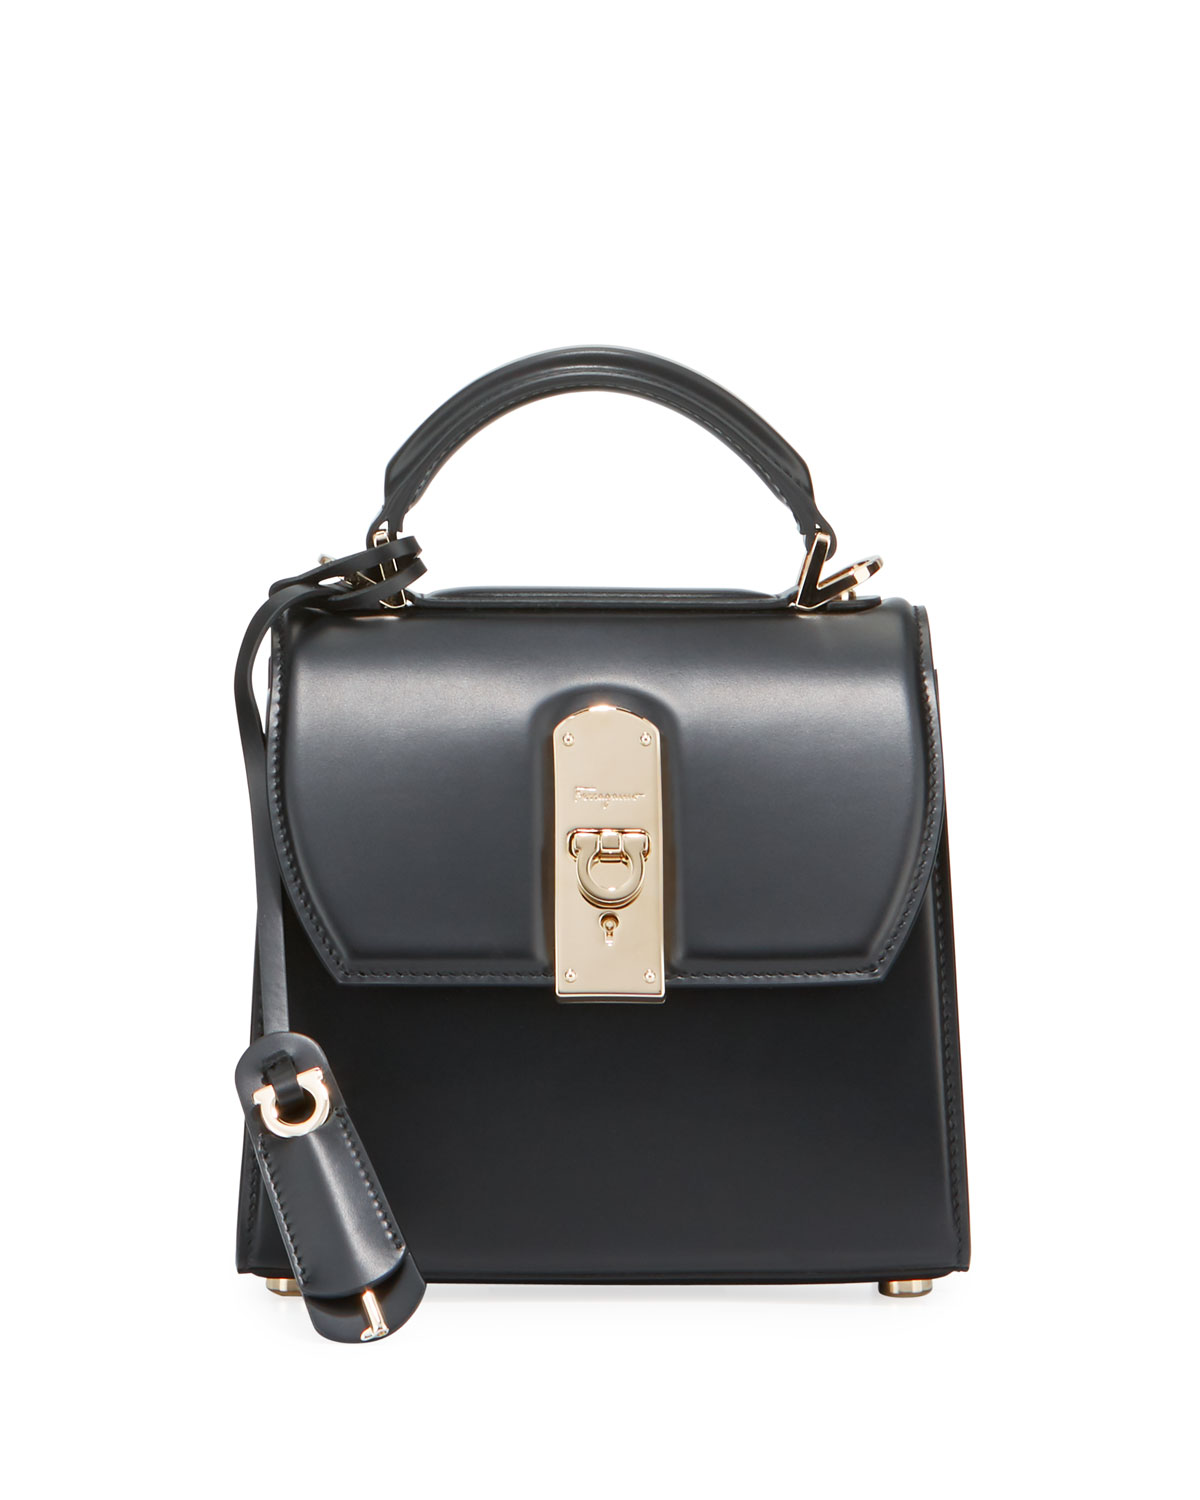 Salvatore Ferragamo Boxyz Piccolo Leather Shoulder Bag In Black